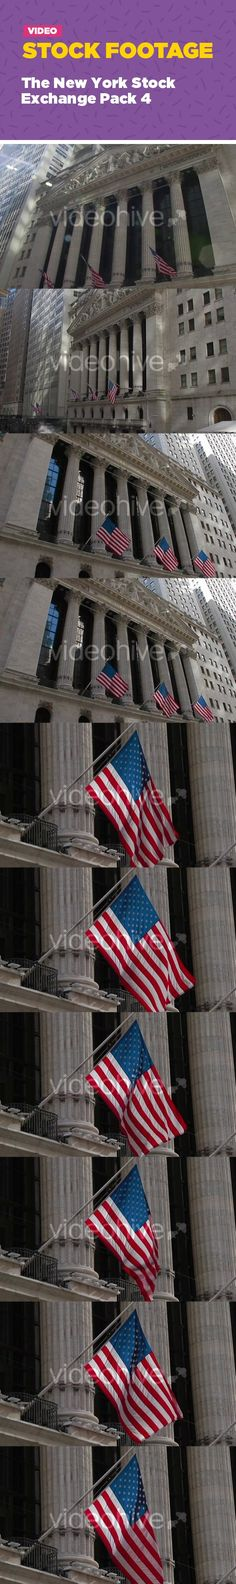 building, business, business in NYC, business money, hd, money, new york, New York Stock Exchange, nyc, nyse, pack 4 4 Differents views of the NYSE – New York Stock Exchange – in NYC. The main facade with american flag.